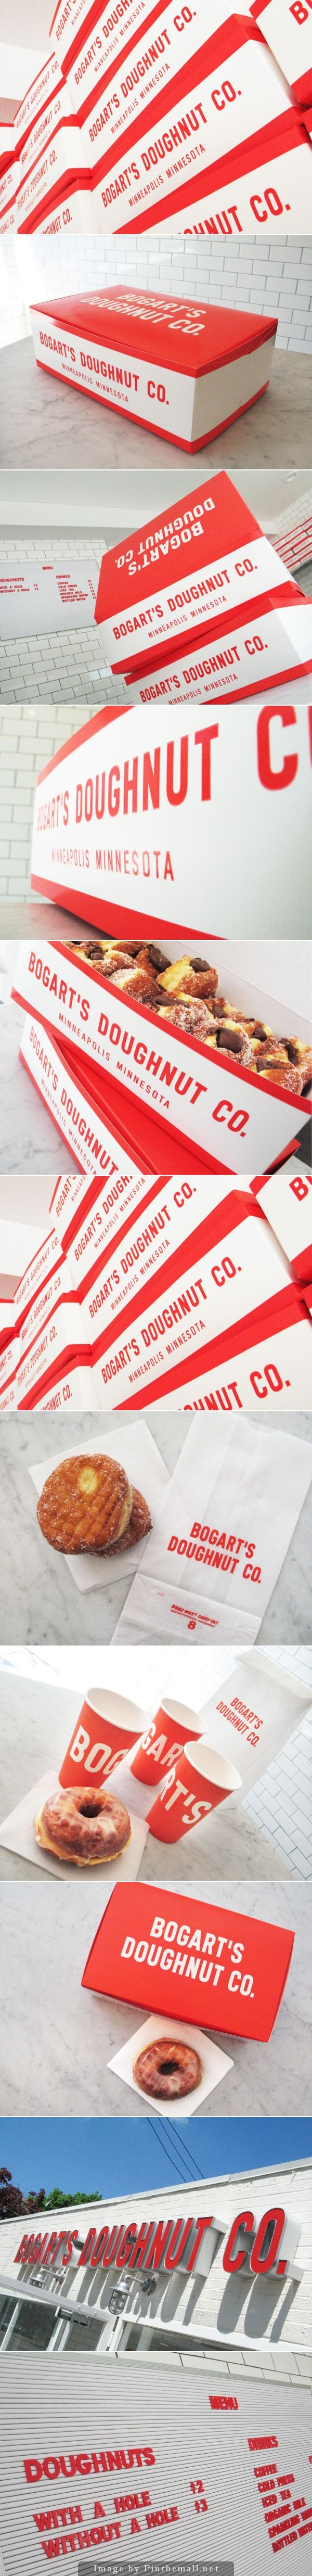 Bogart's Doughnut Co. #packaging #design | by Jeff Holmberg, Holmberg Design Co.